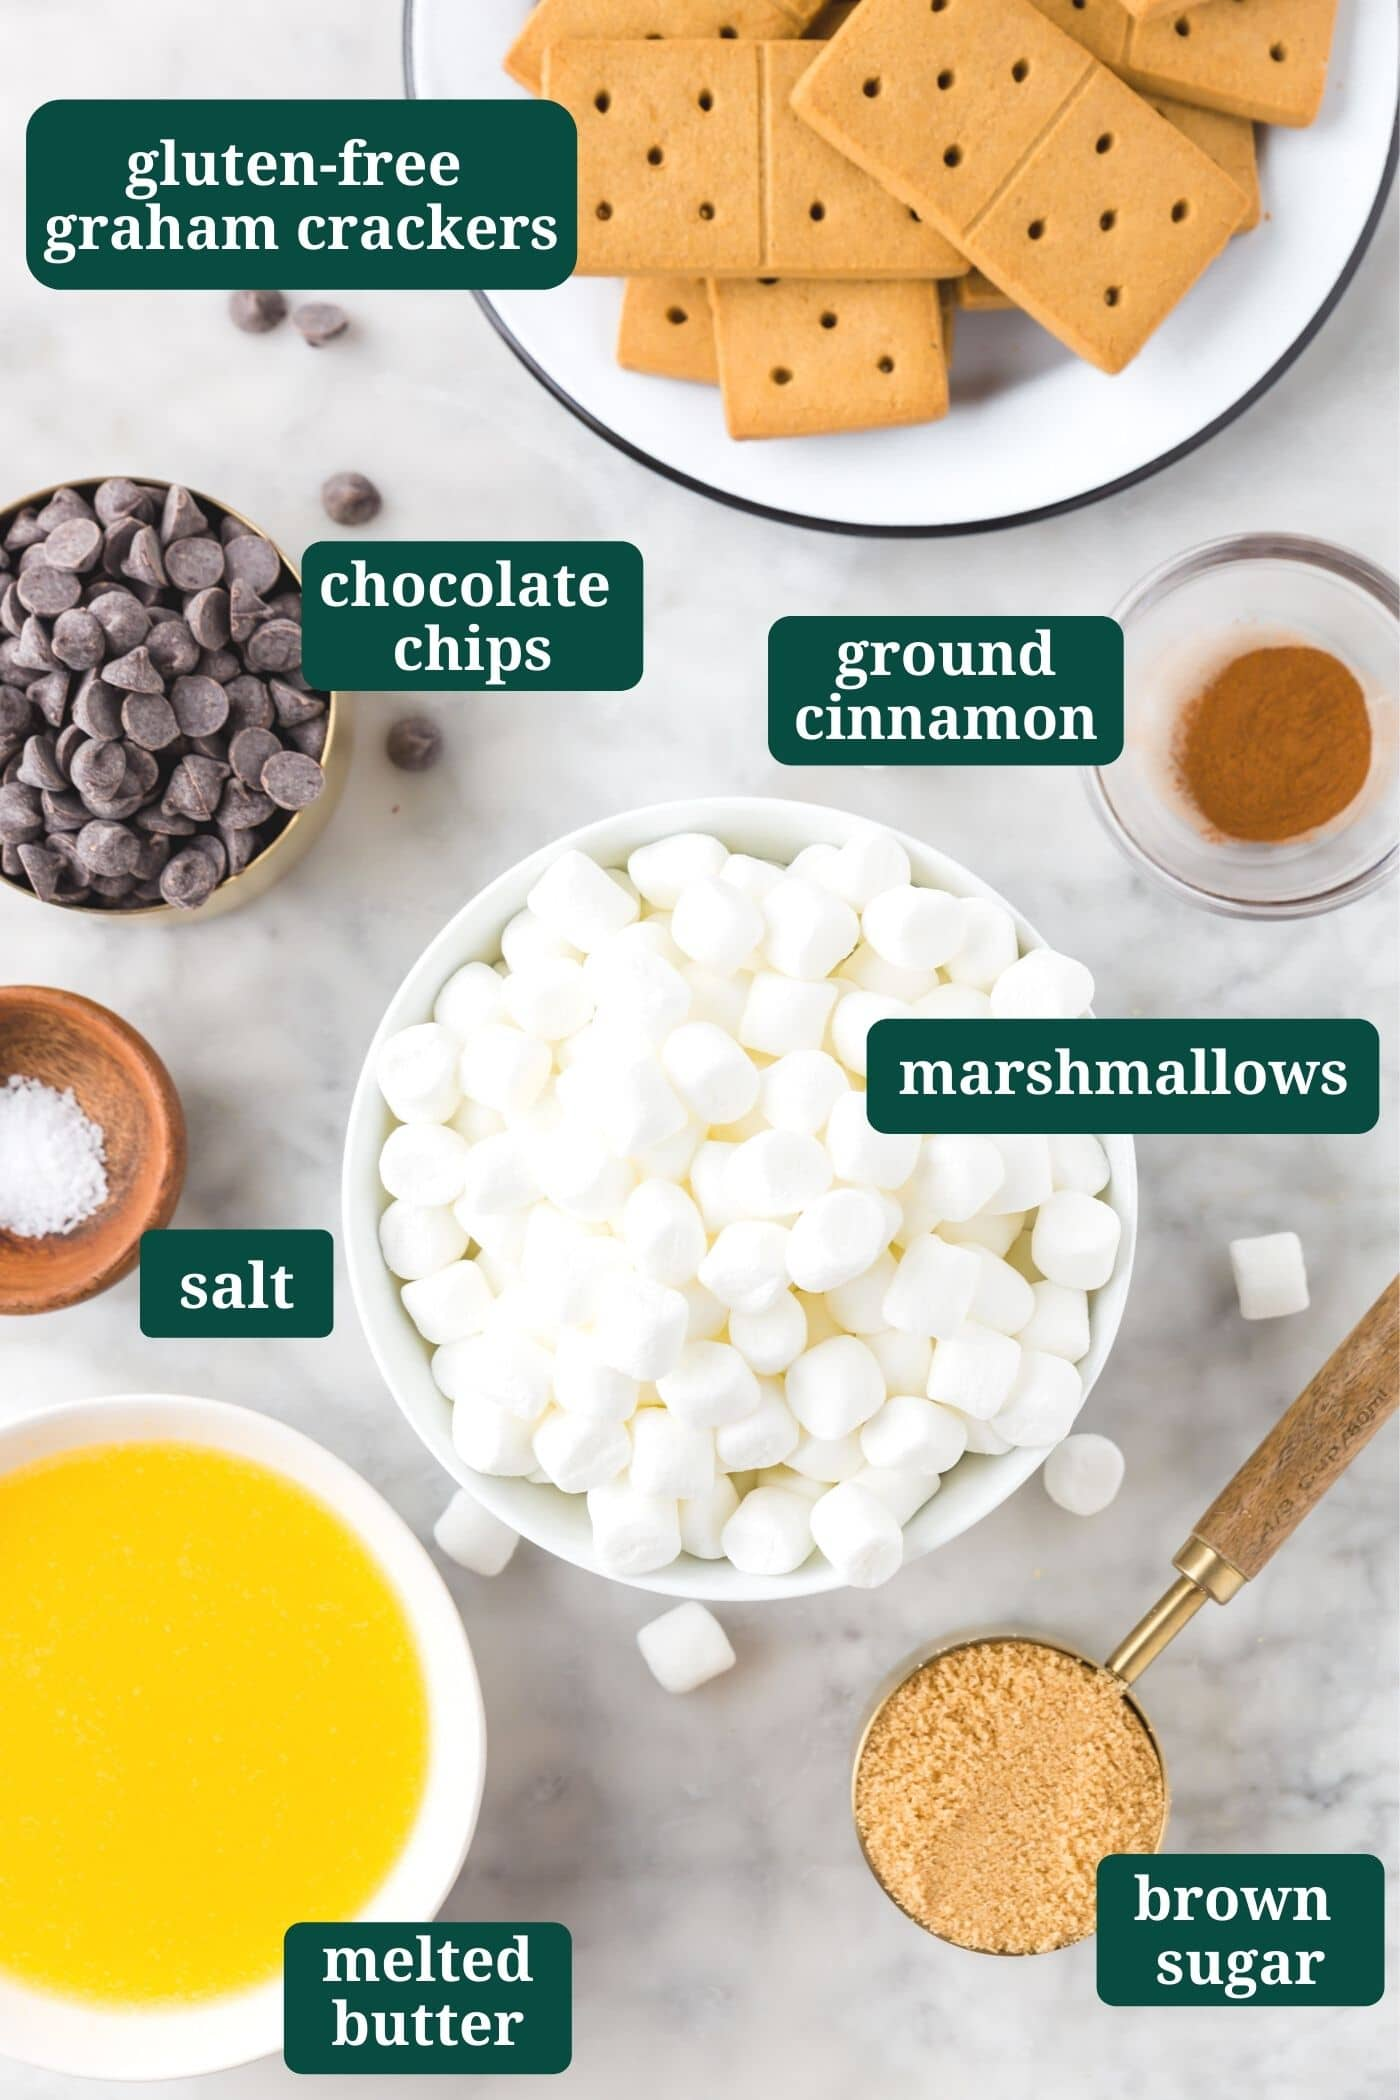 An overhead photo of ingredients for s'mores bars: gluten-free graham crackers, semi-sweet chocolate chips, mini marshmallows, ground cinnamon, salt, melted butter and brown sugar.